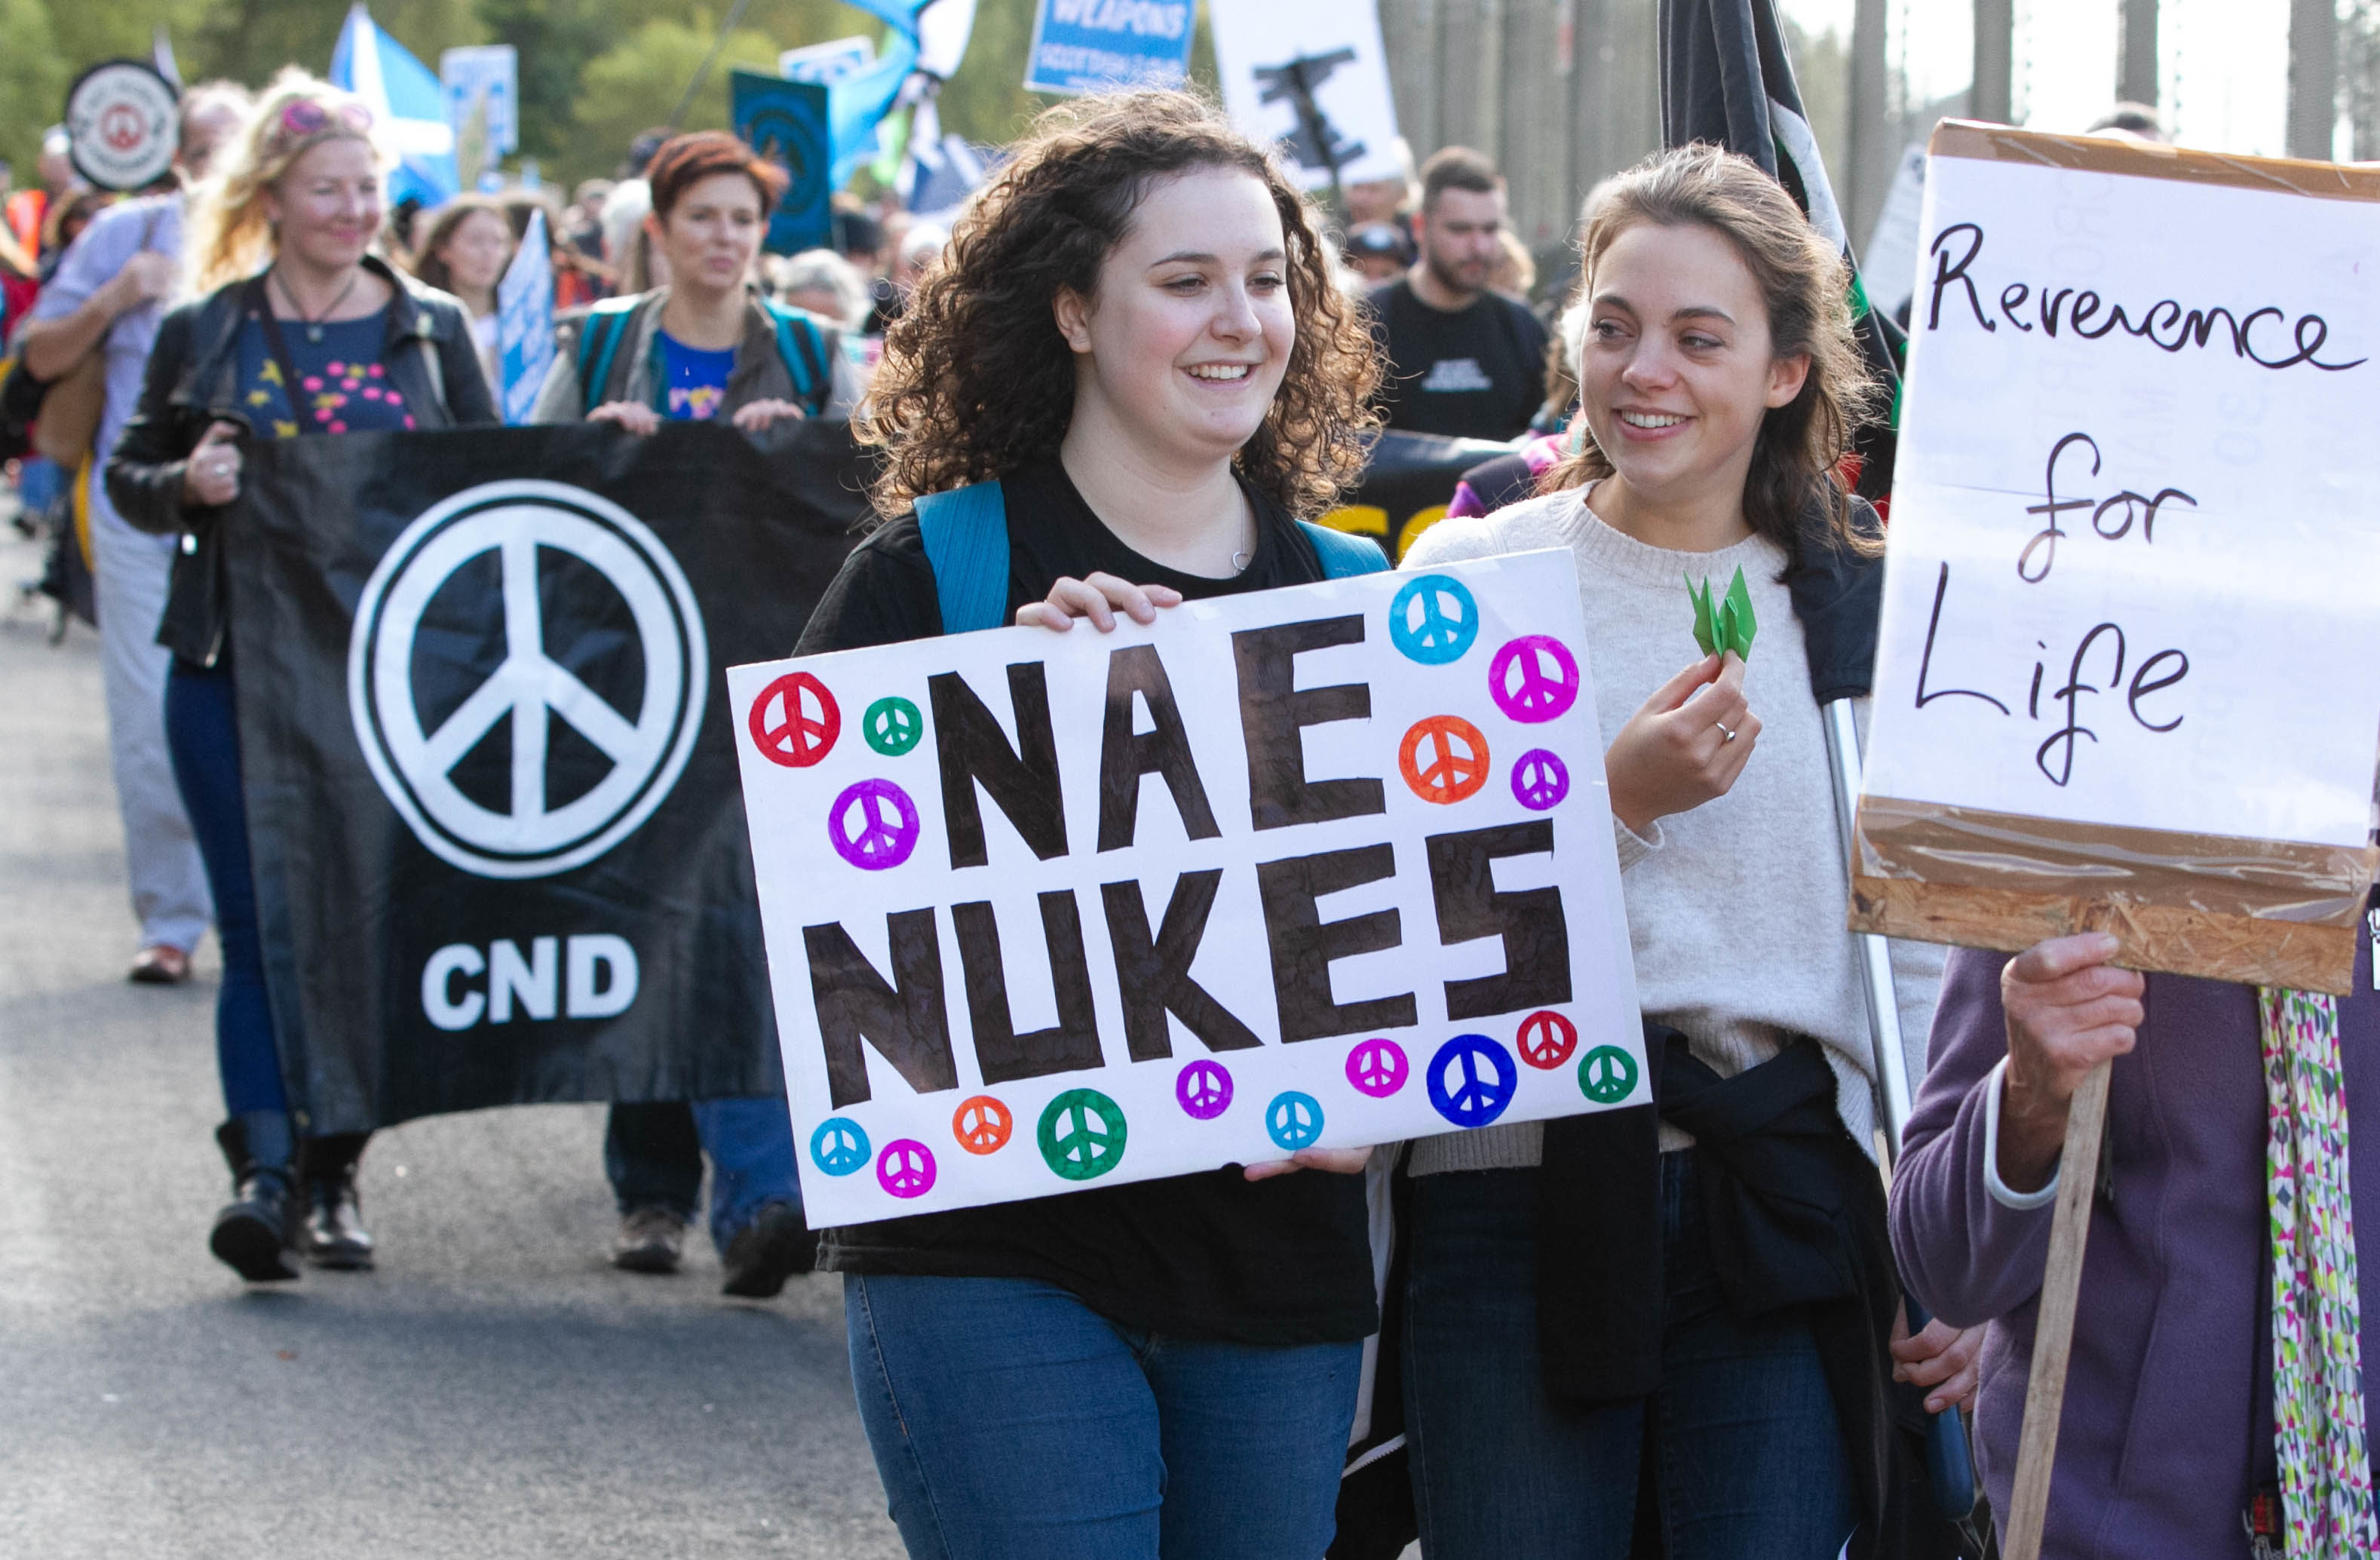 Nae Nukes demo at Faslane Navel Base (Chris Austin / DC Thomson)